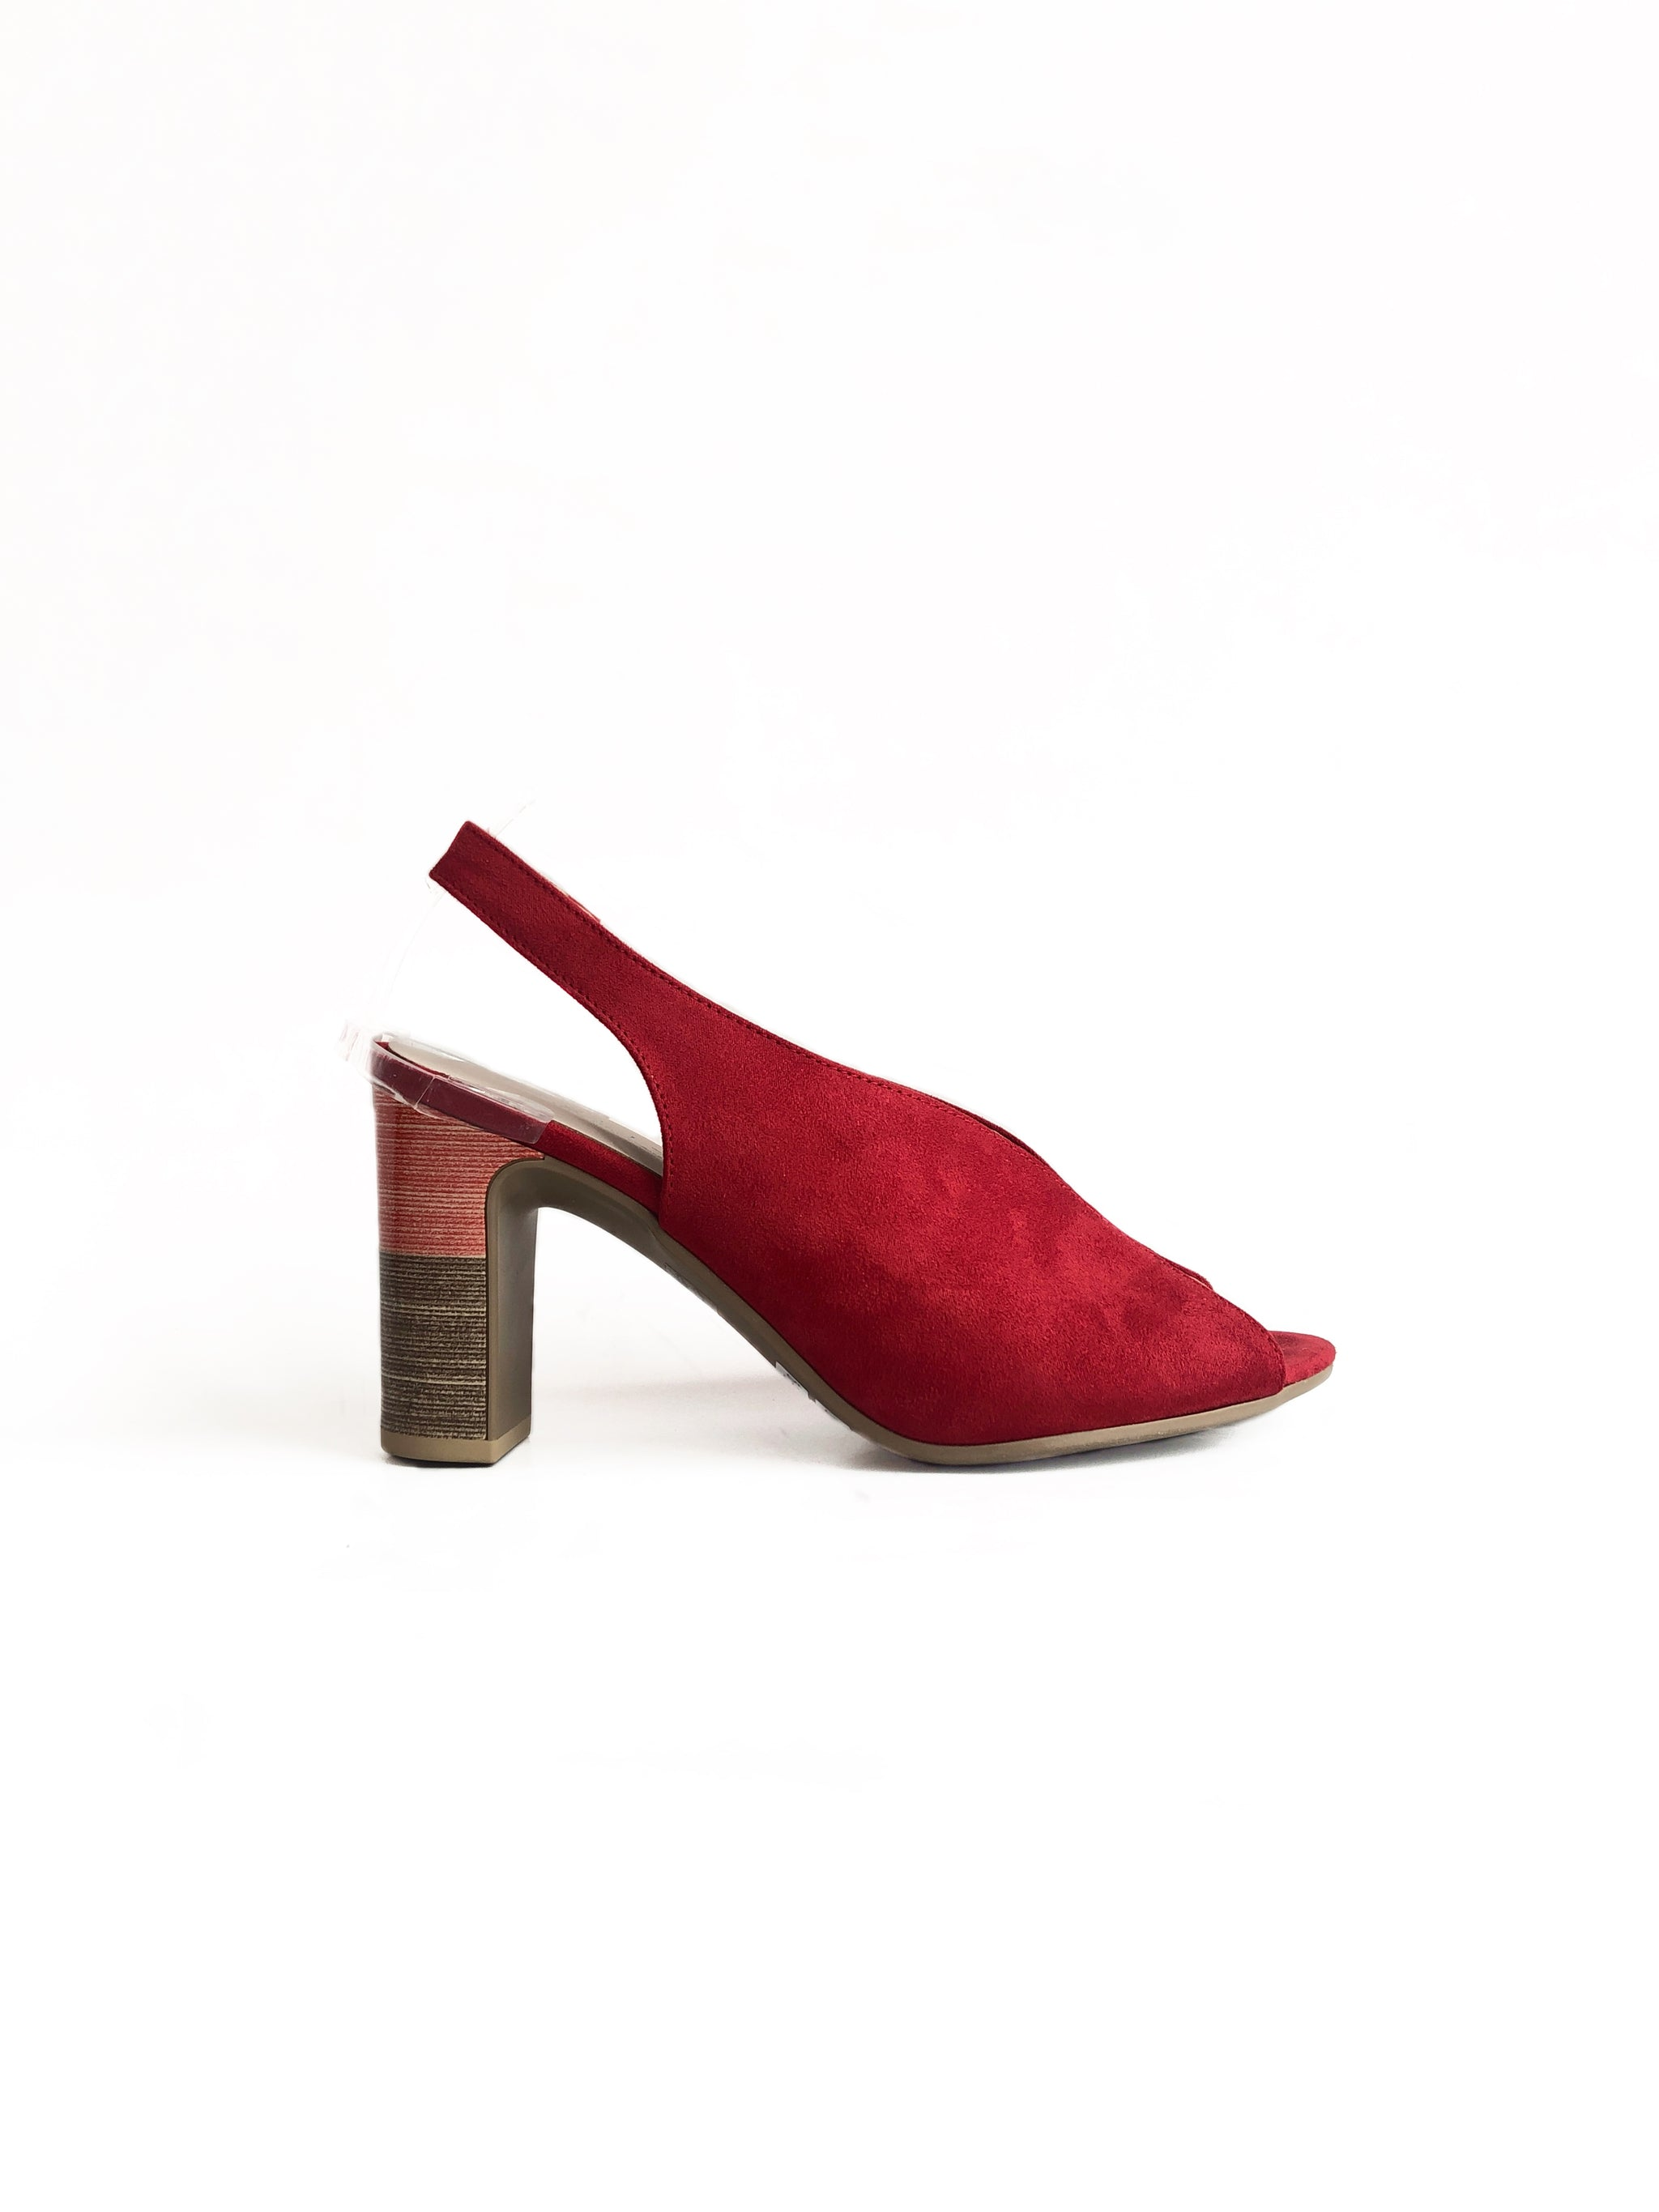 ATELIERS - DUTTON IN RED SUEDE